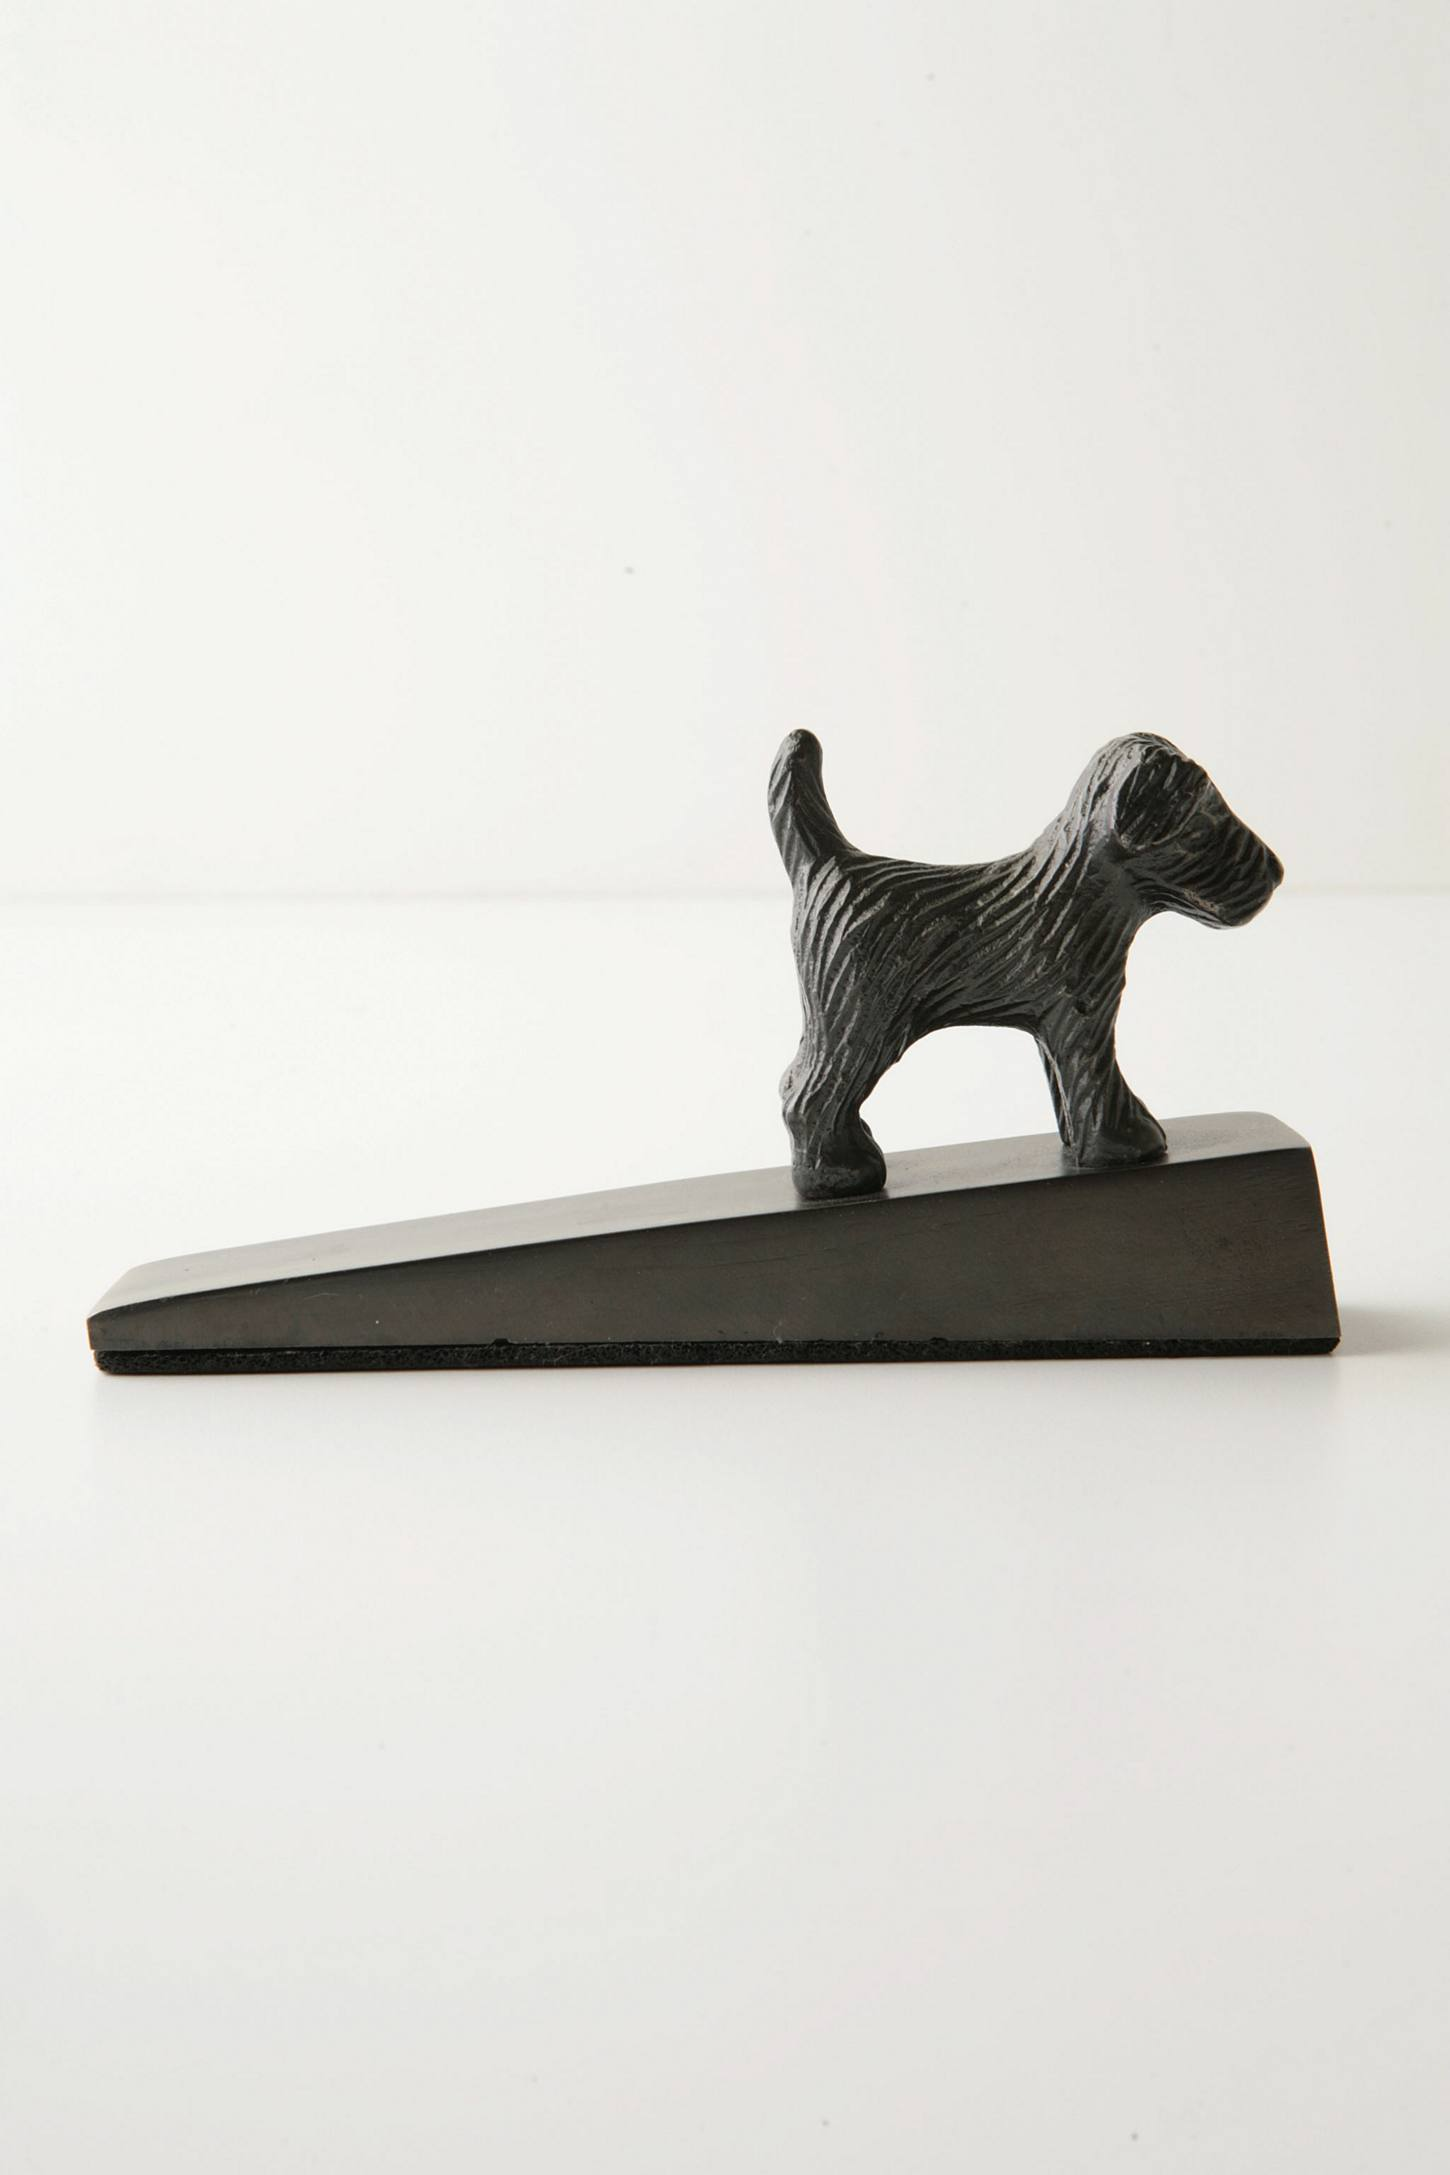 Slide View: 3: Watchdog Doorstop